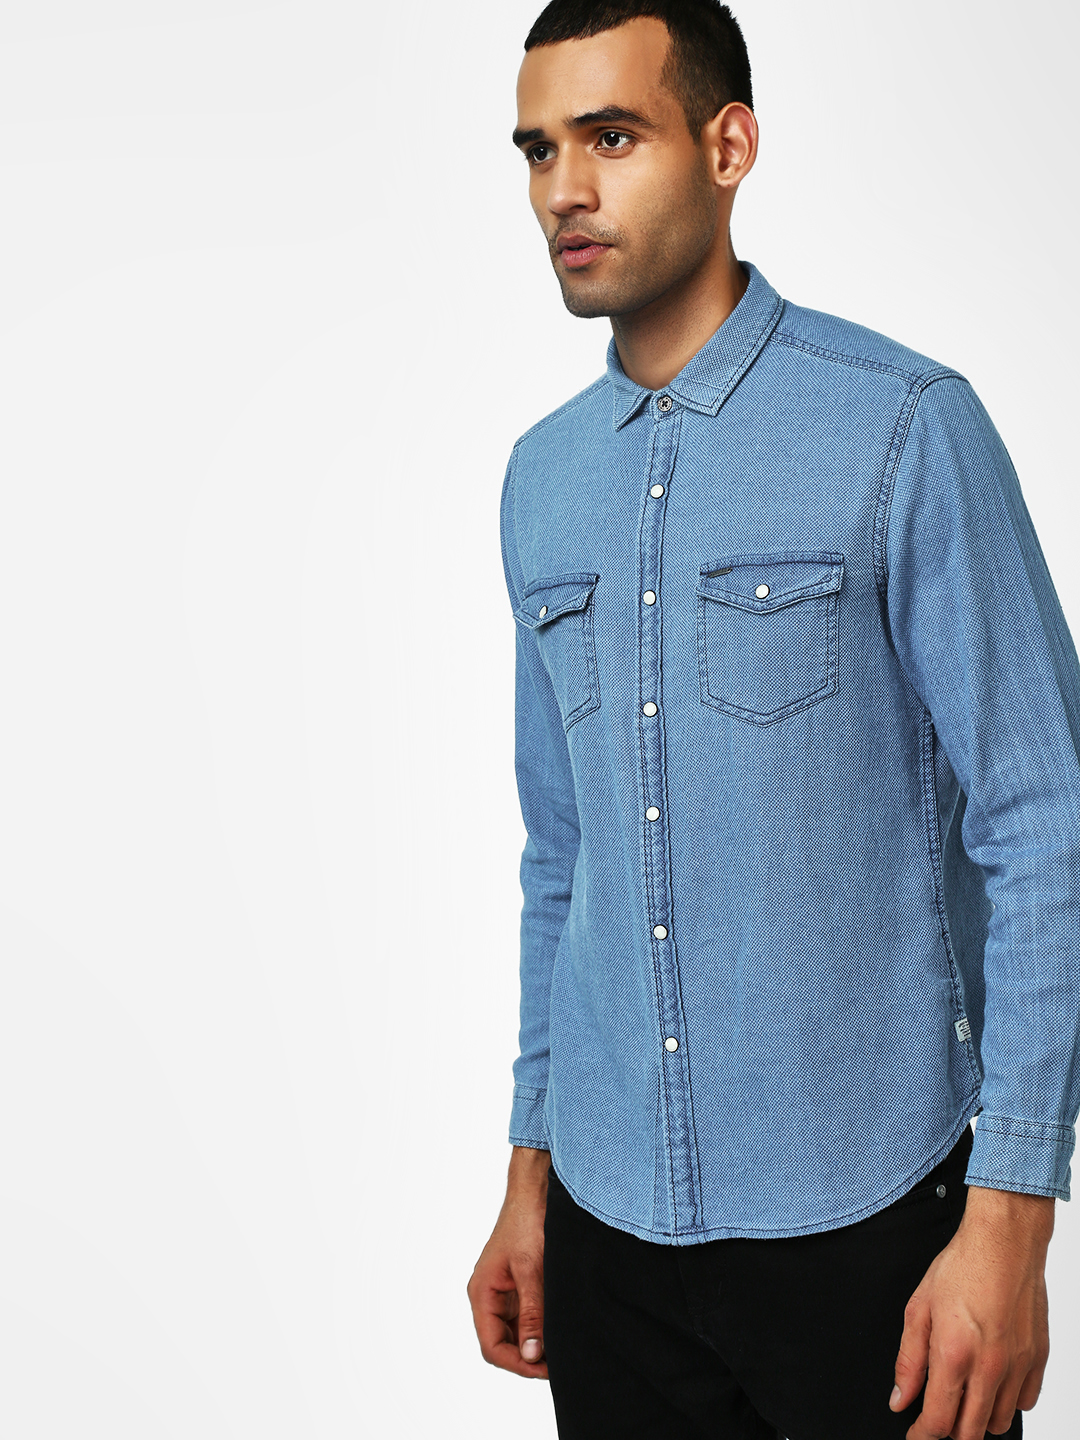 Indigo Nation Blue Long Sleeve Woven Casual Shirt 1